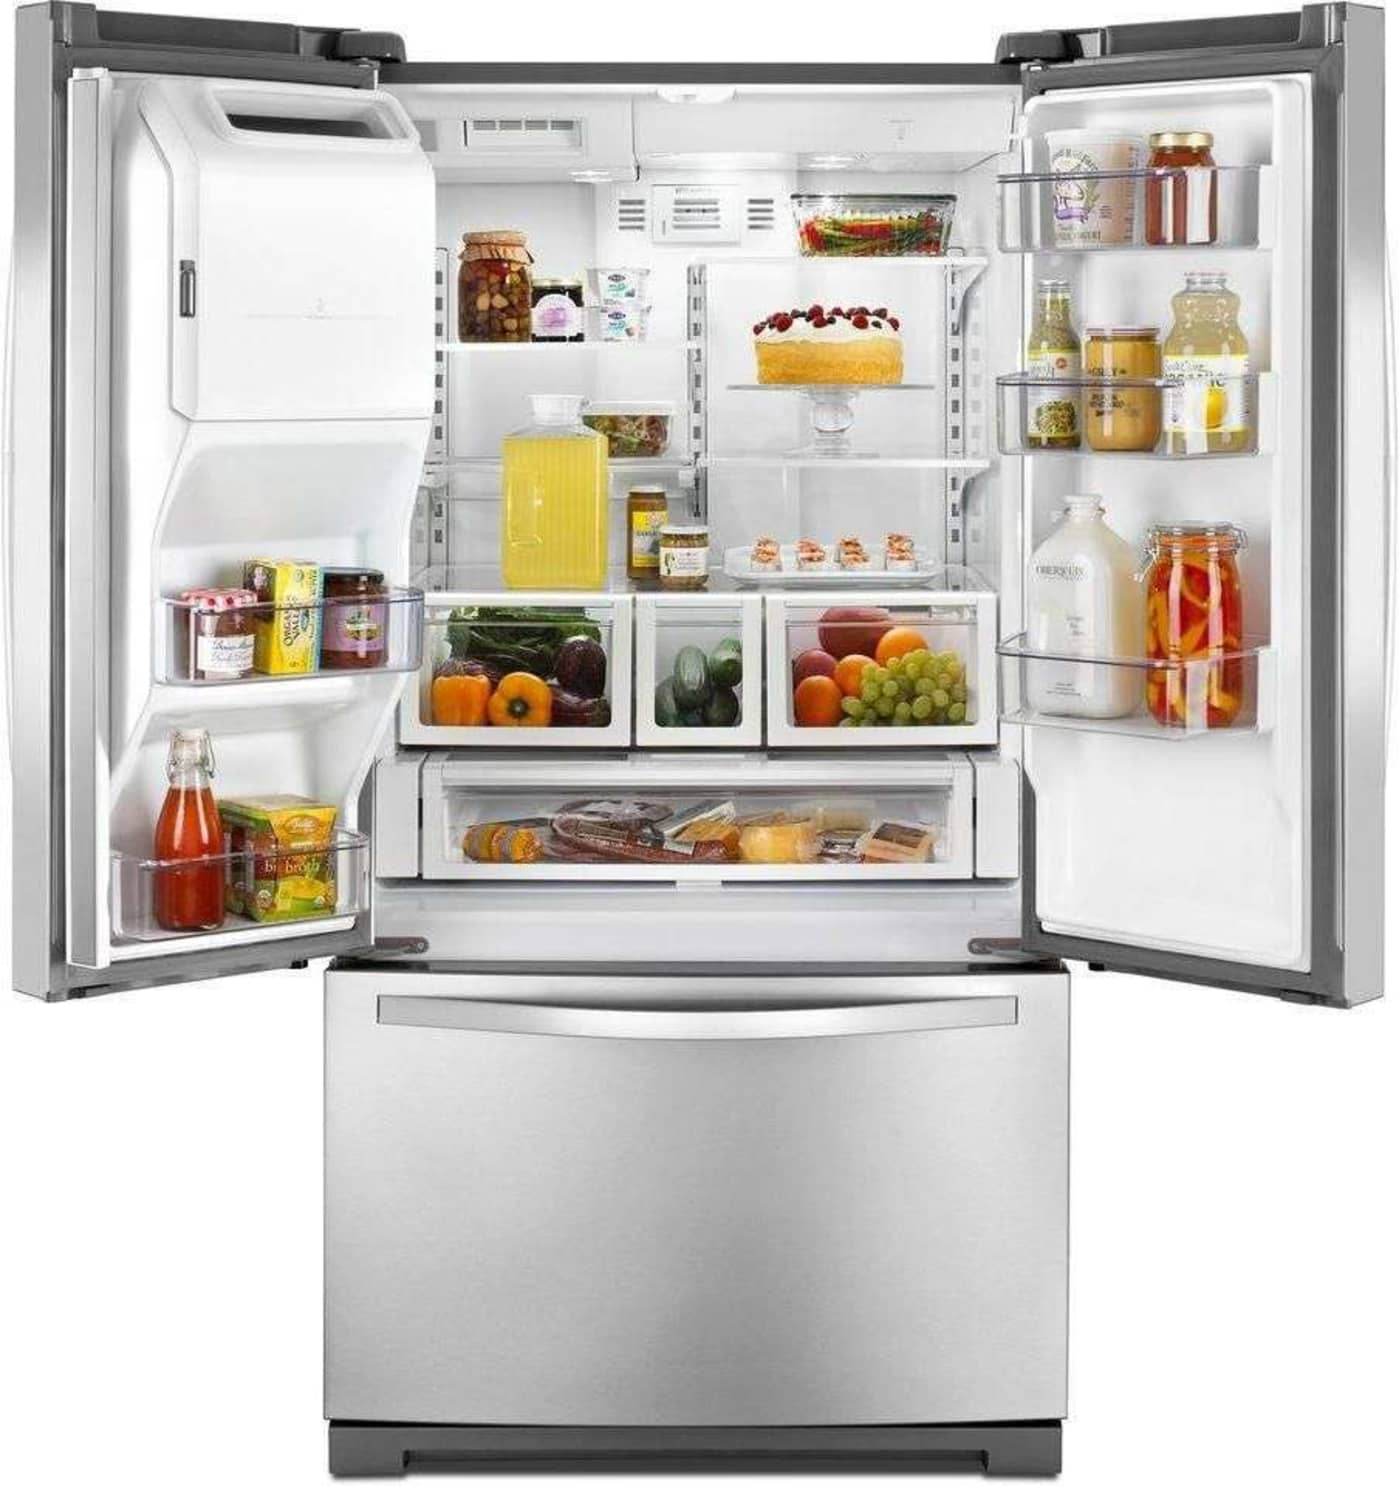 Wrf736sdam By Whirlpool French Door Refrigerators